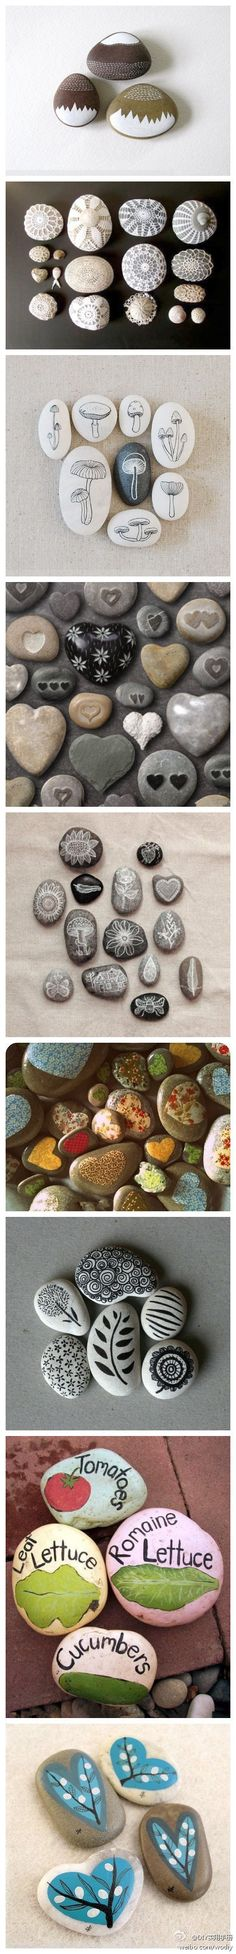 Painted Rocks - The ones that we have collected from trips would be especially cute!